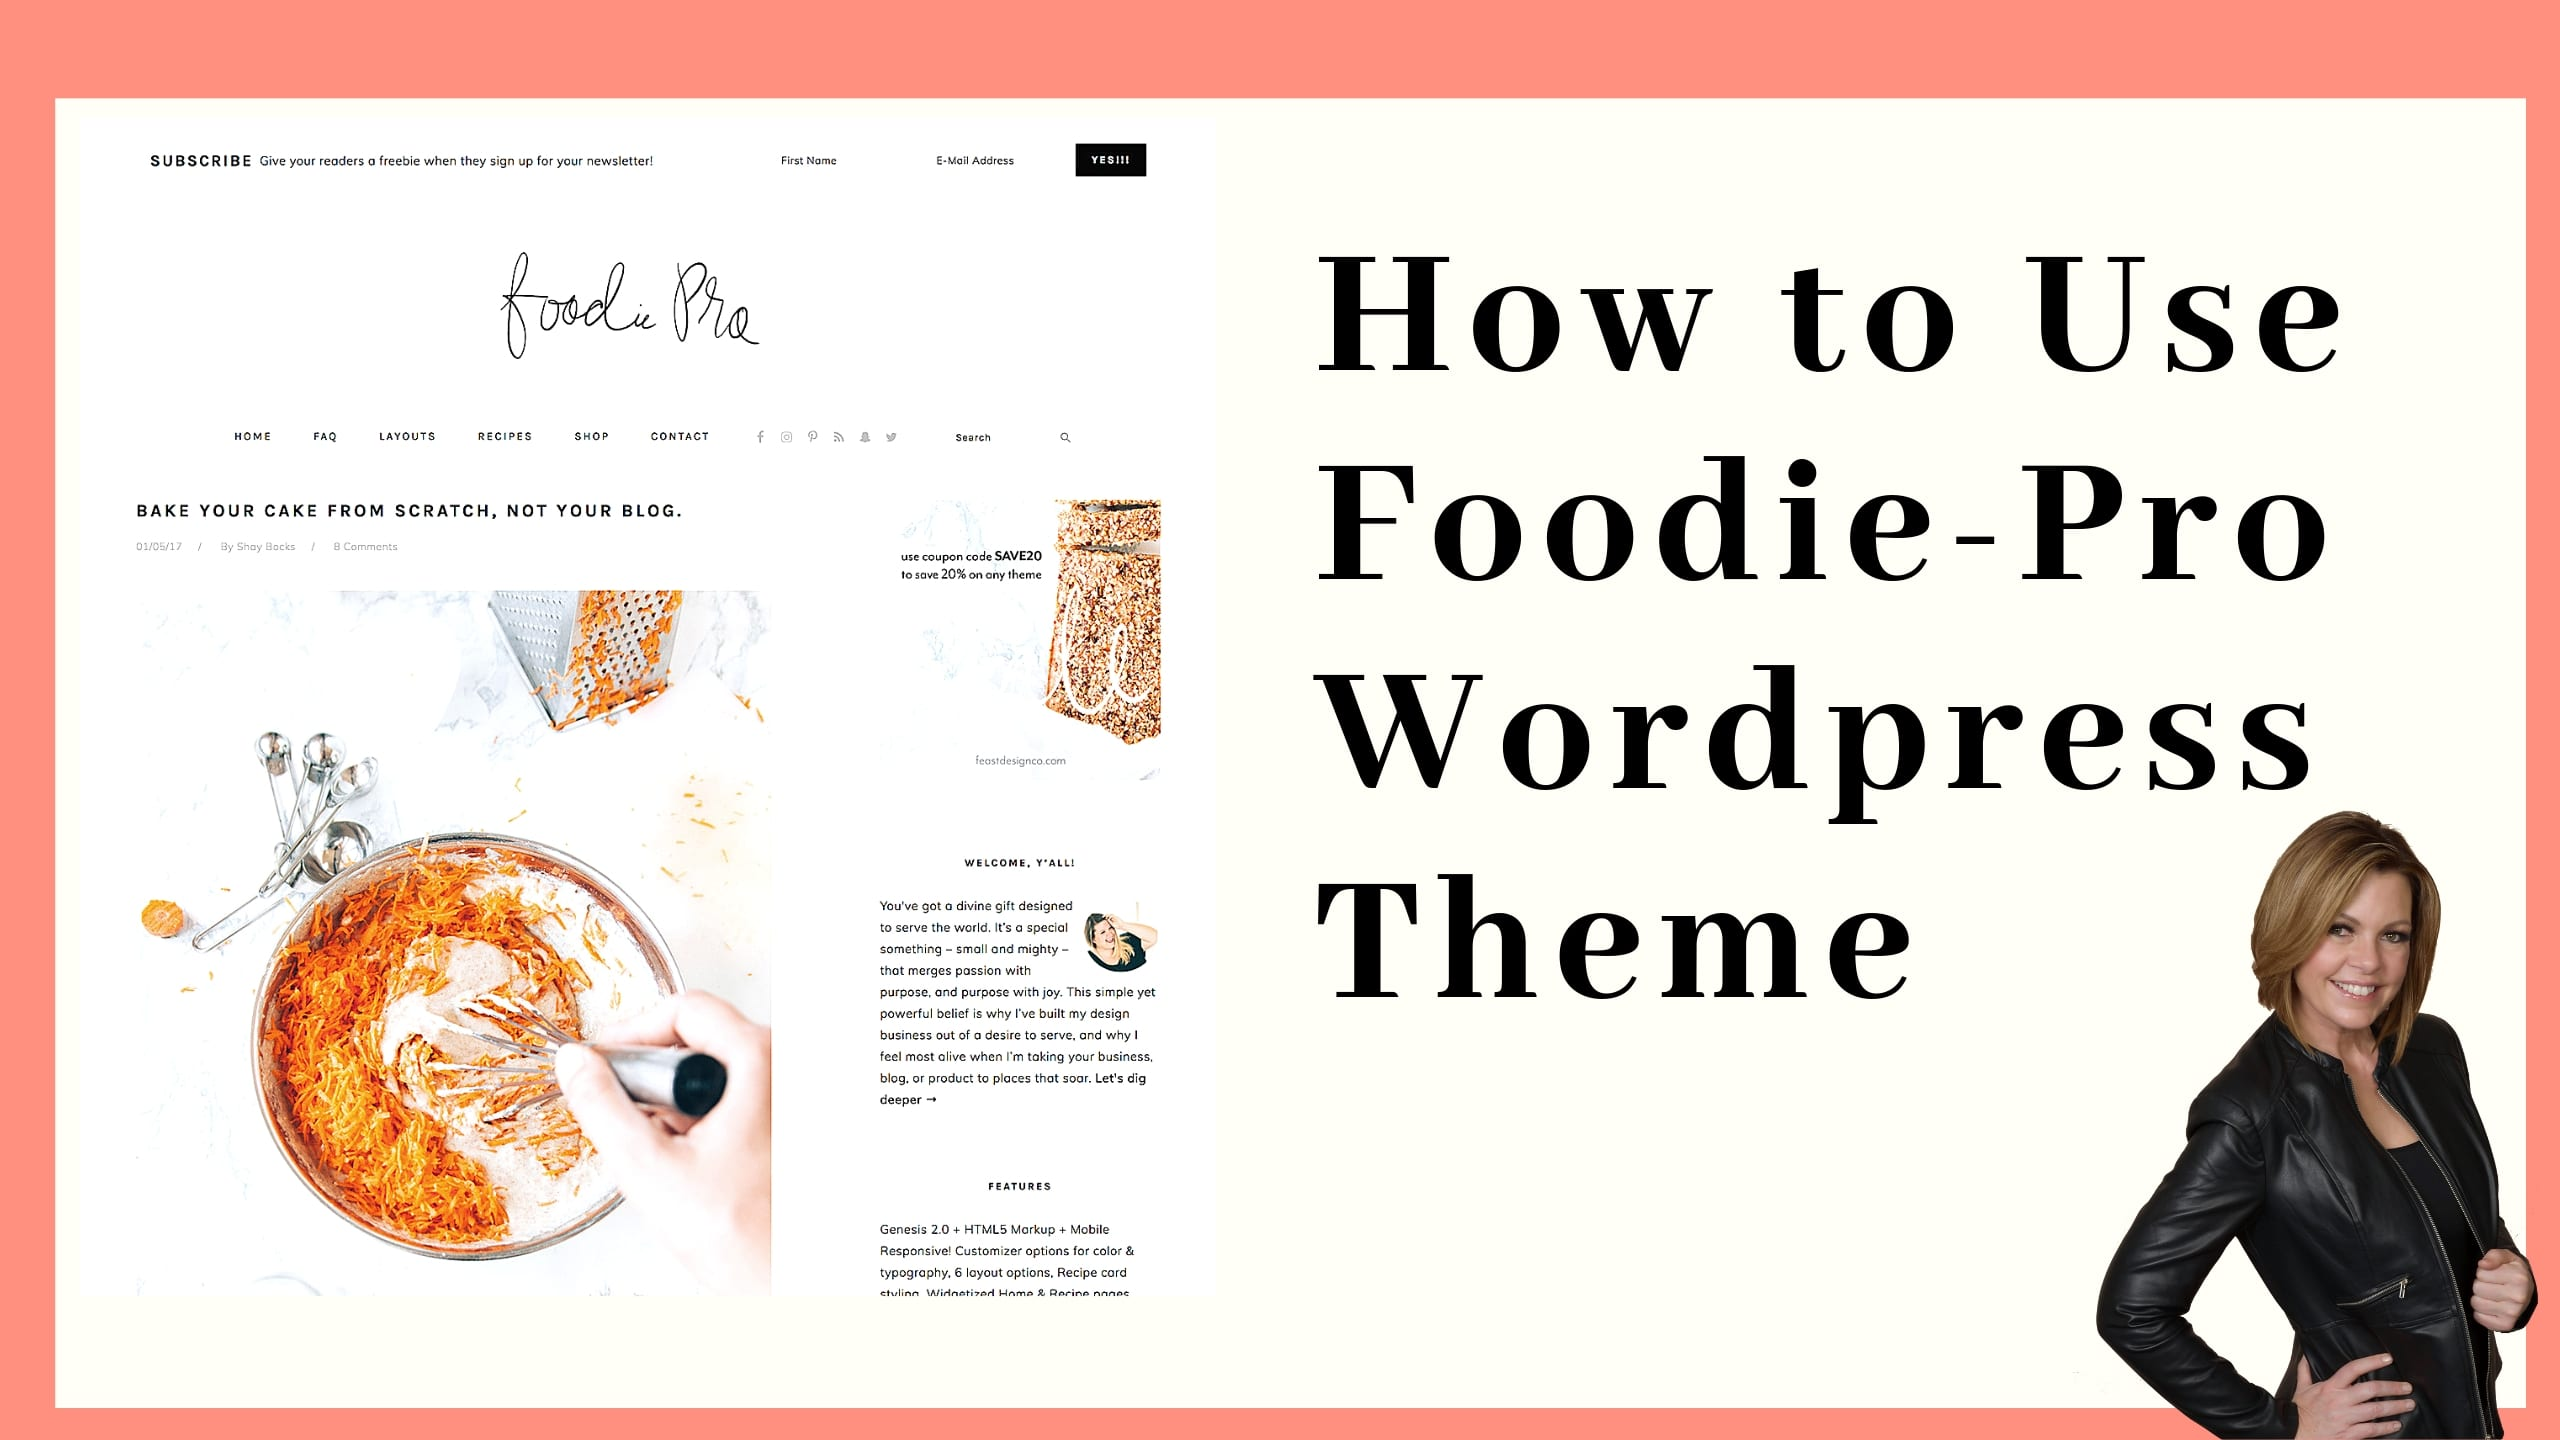 The Foodie Pro WordPress theme is one of the most popular themes for food blogs. It offers a She's sleek minimalist approach with a clean design with robust features. It's a Genesis theme favored for its flexibility.